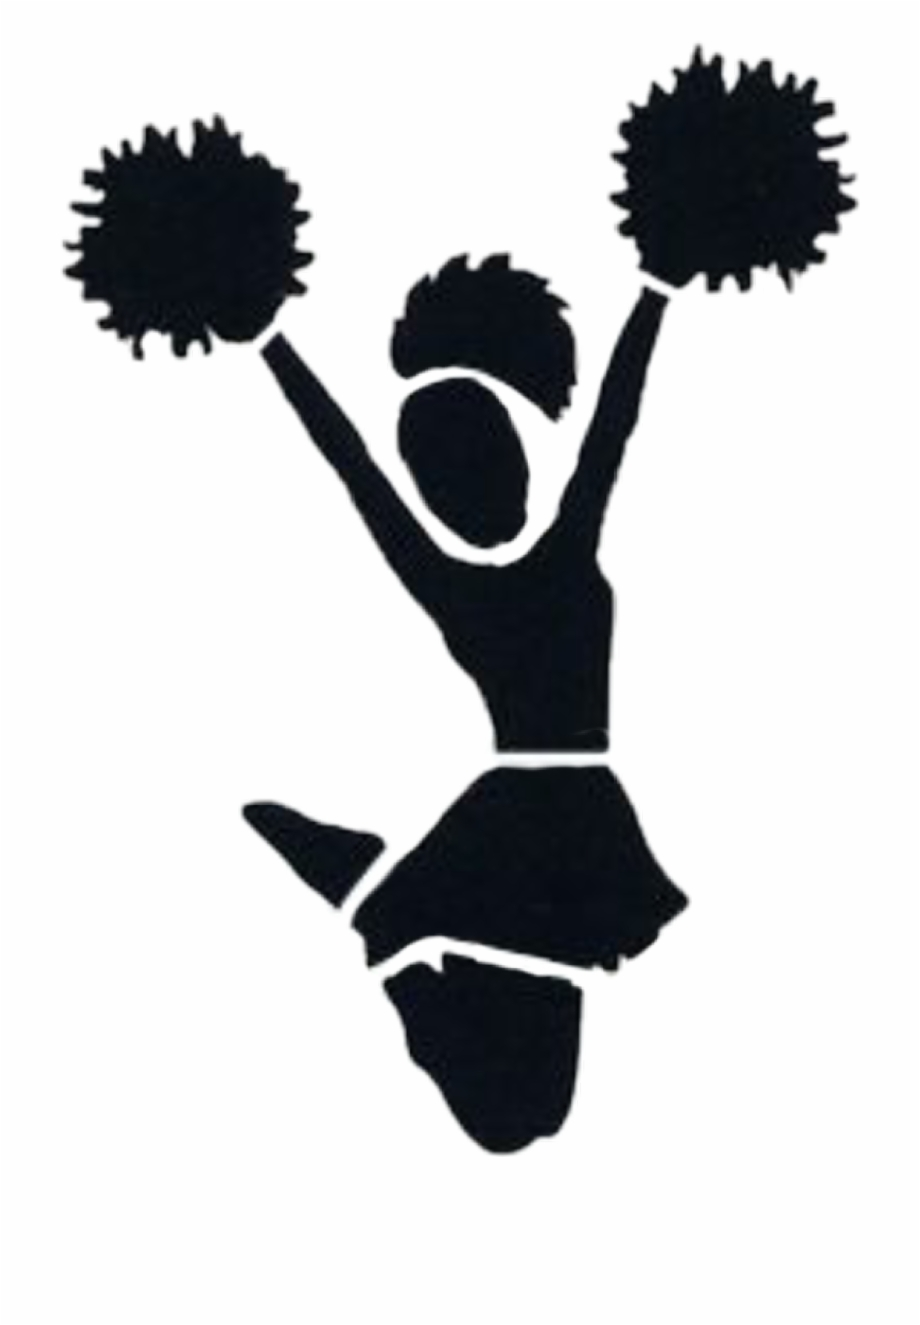 Cheer toe touch clipart freeuse Cheerleaders Sticker - Cheerleader Png Free PNG Images & Clipart ... freeuse